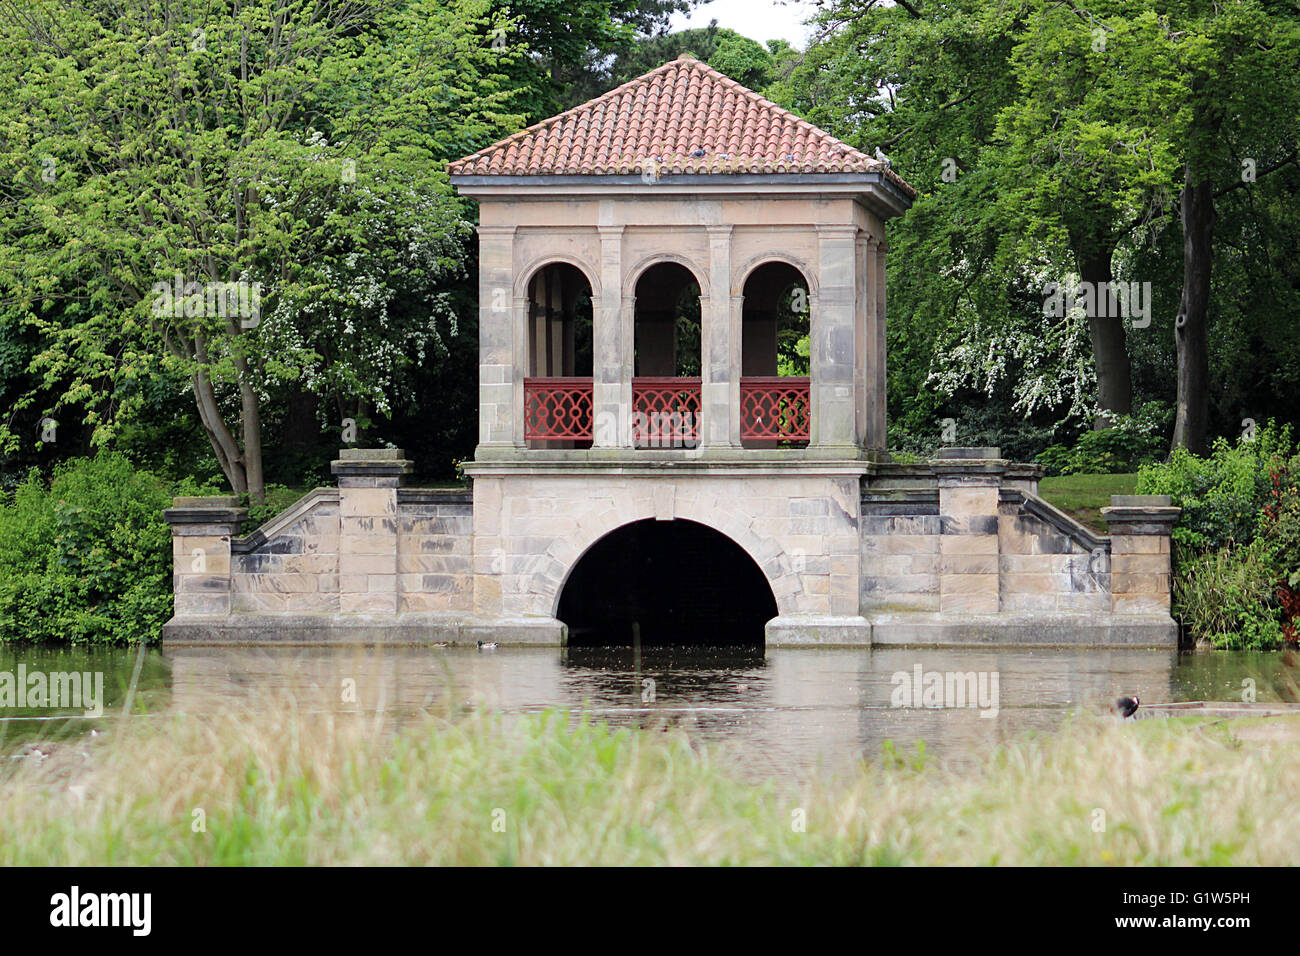 Ornate park bridge - Birkenhead central park - Stock Image